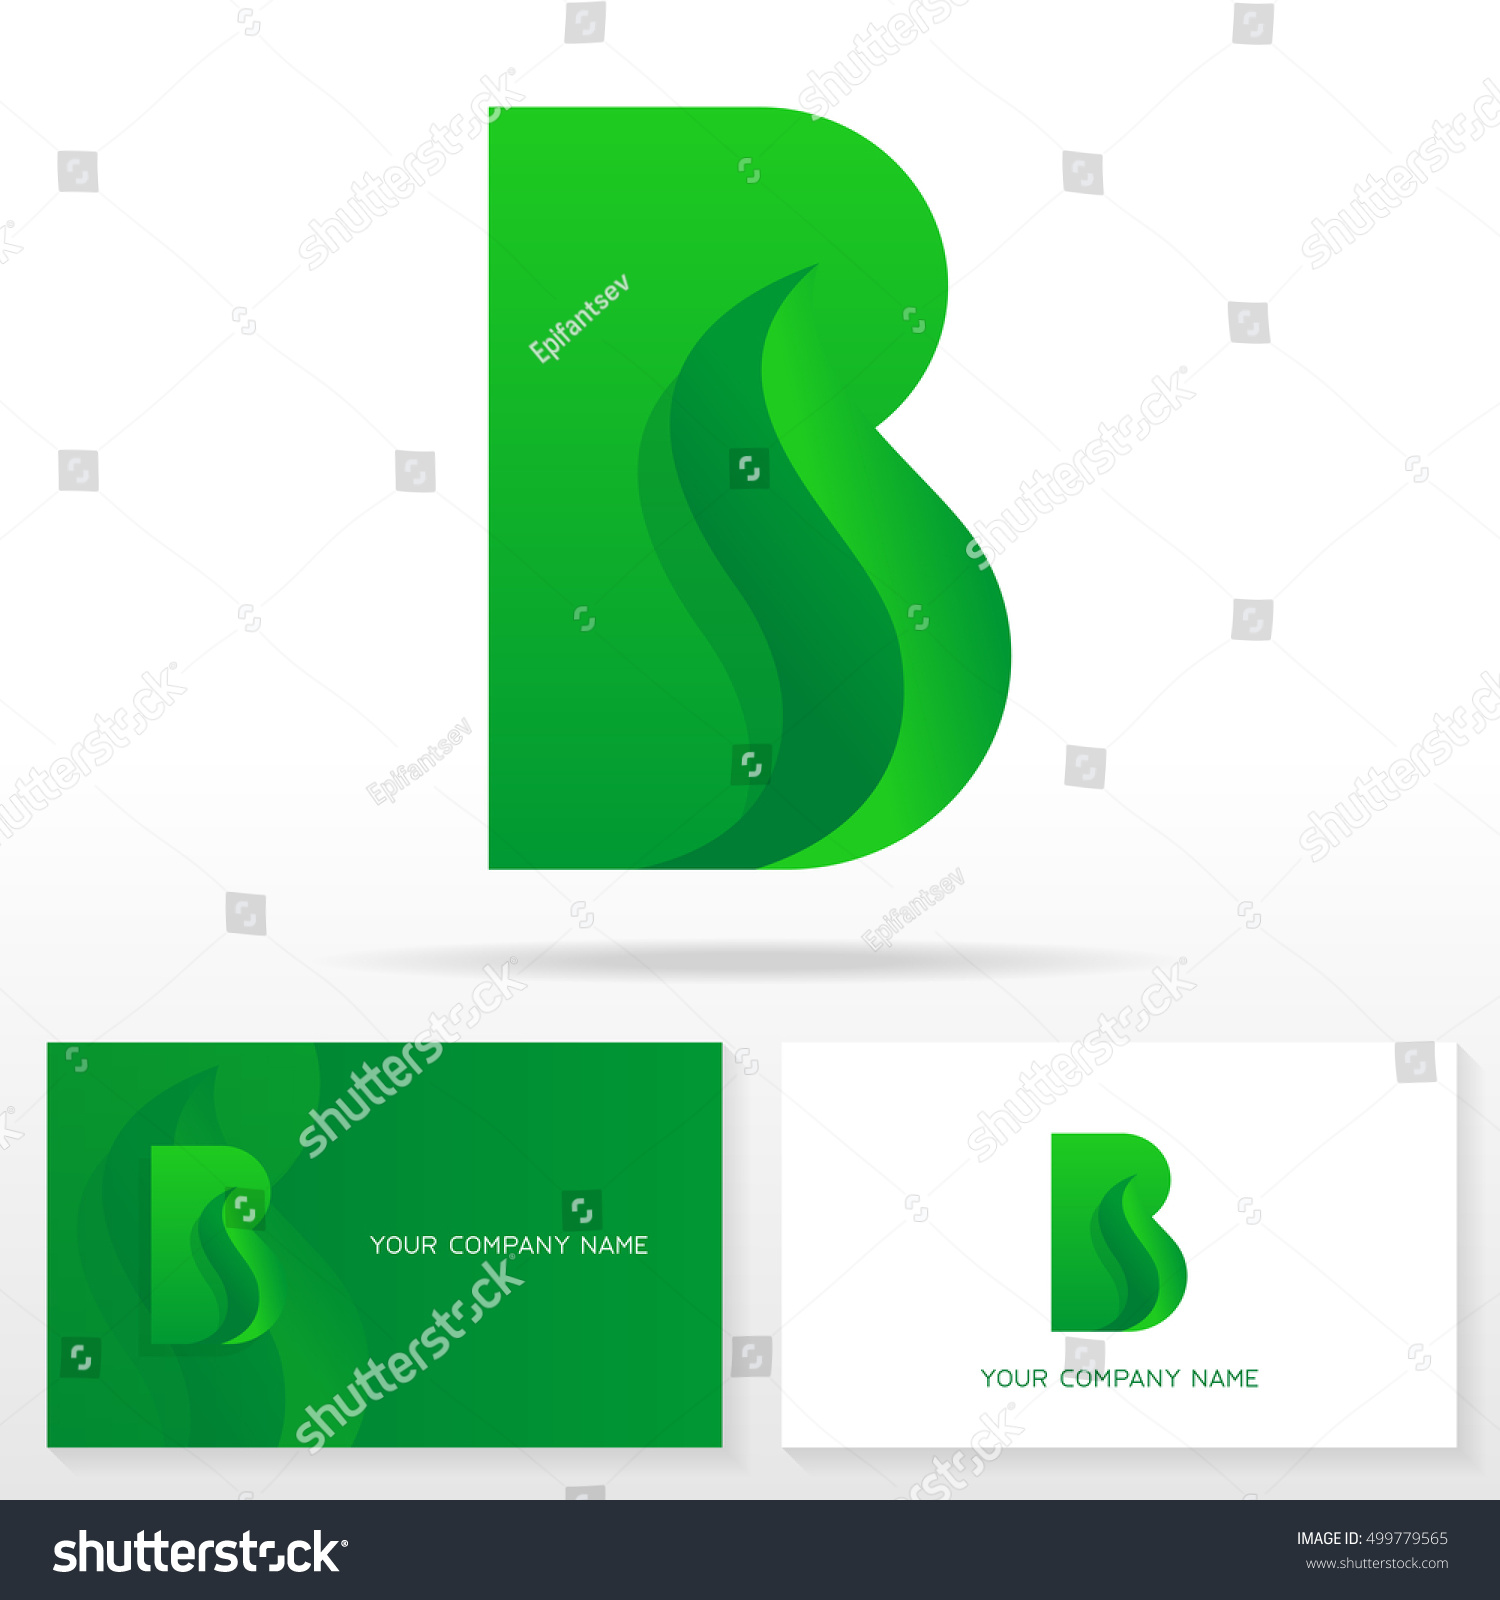 Letter b logo icon design template stock vector 499779565 letter b logo icon design template business card templates vector illustration pronofoot35fo Image collections